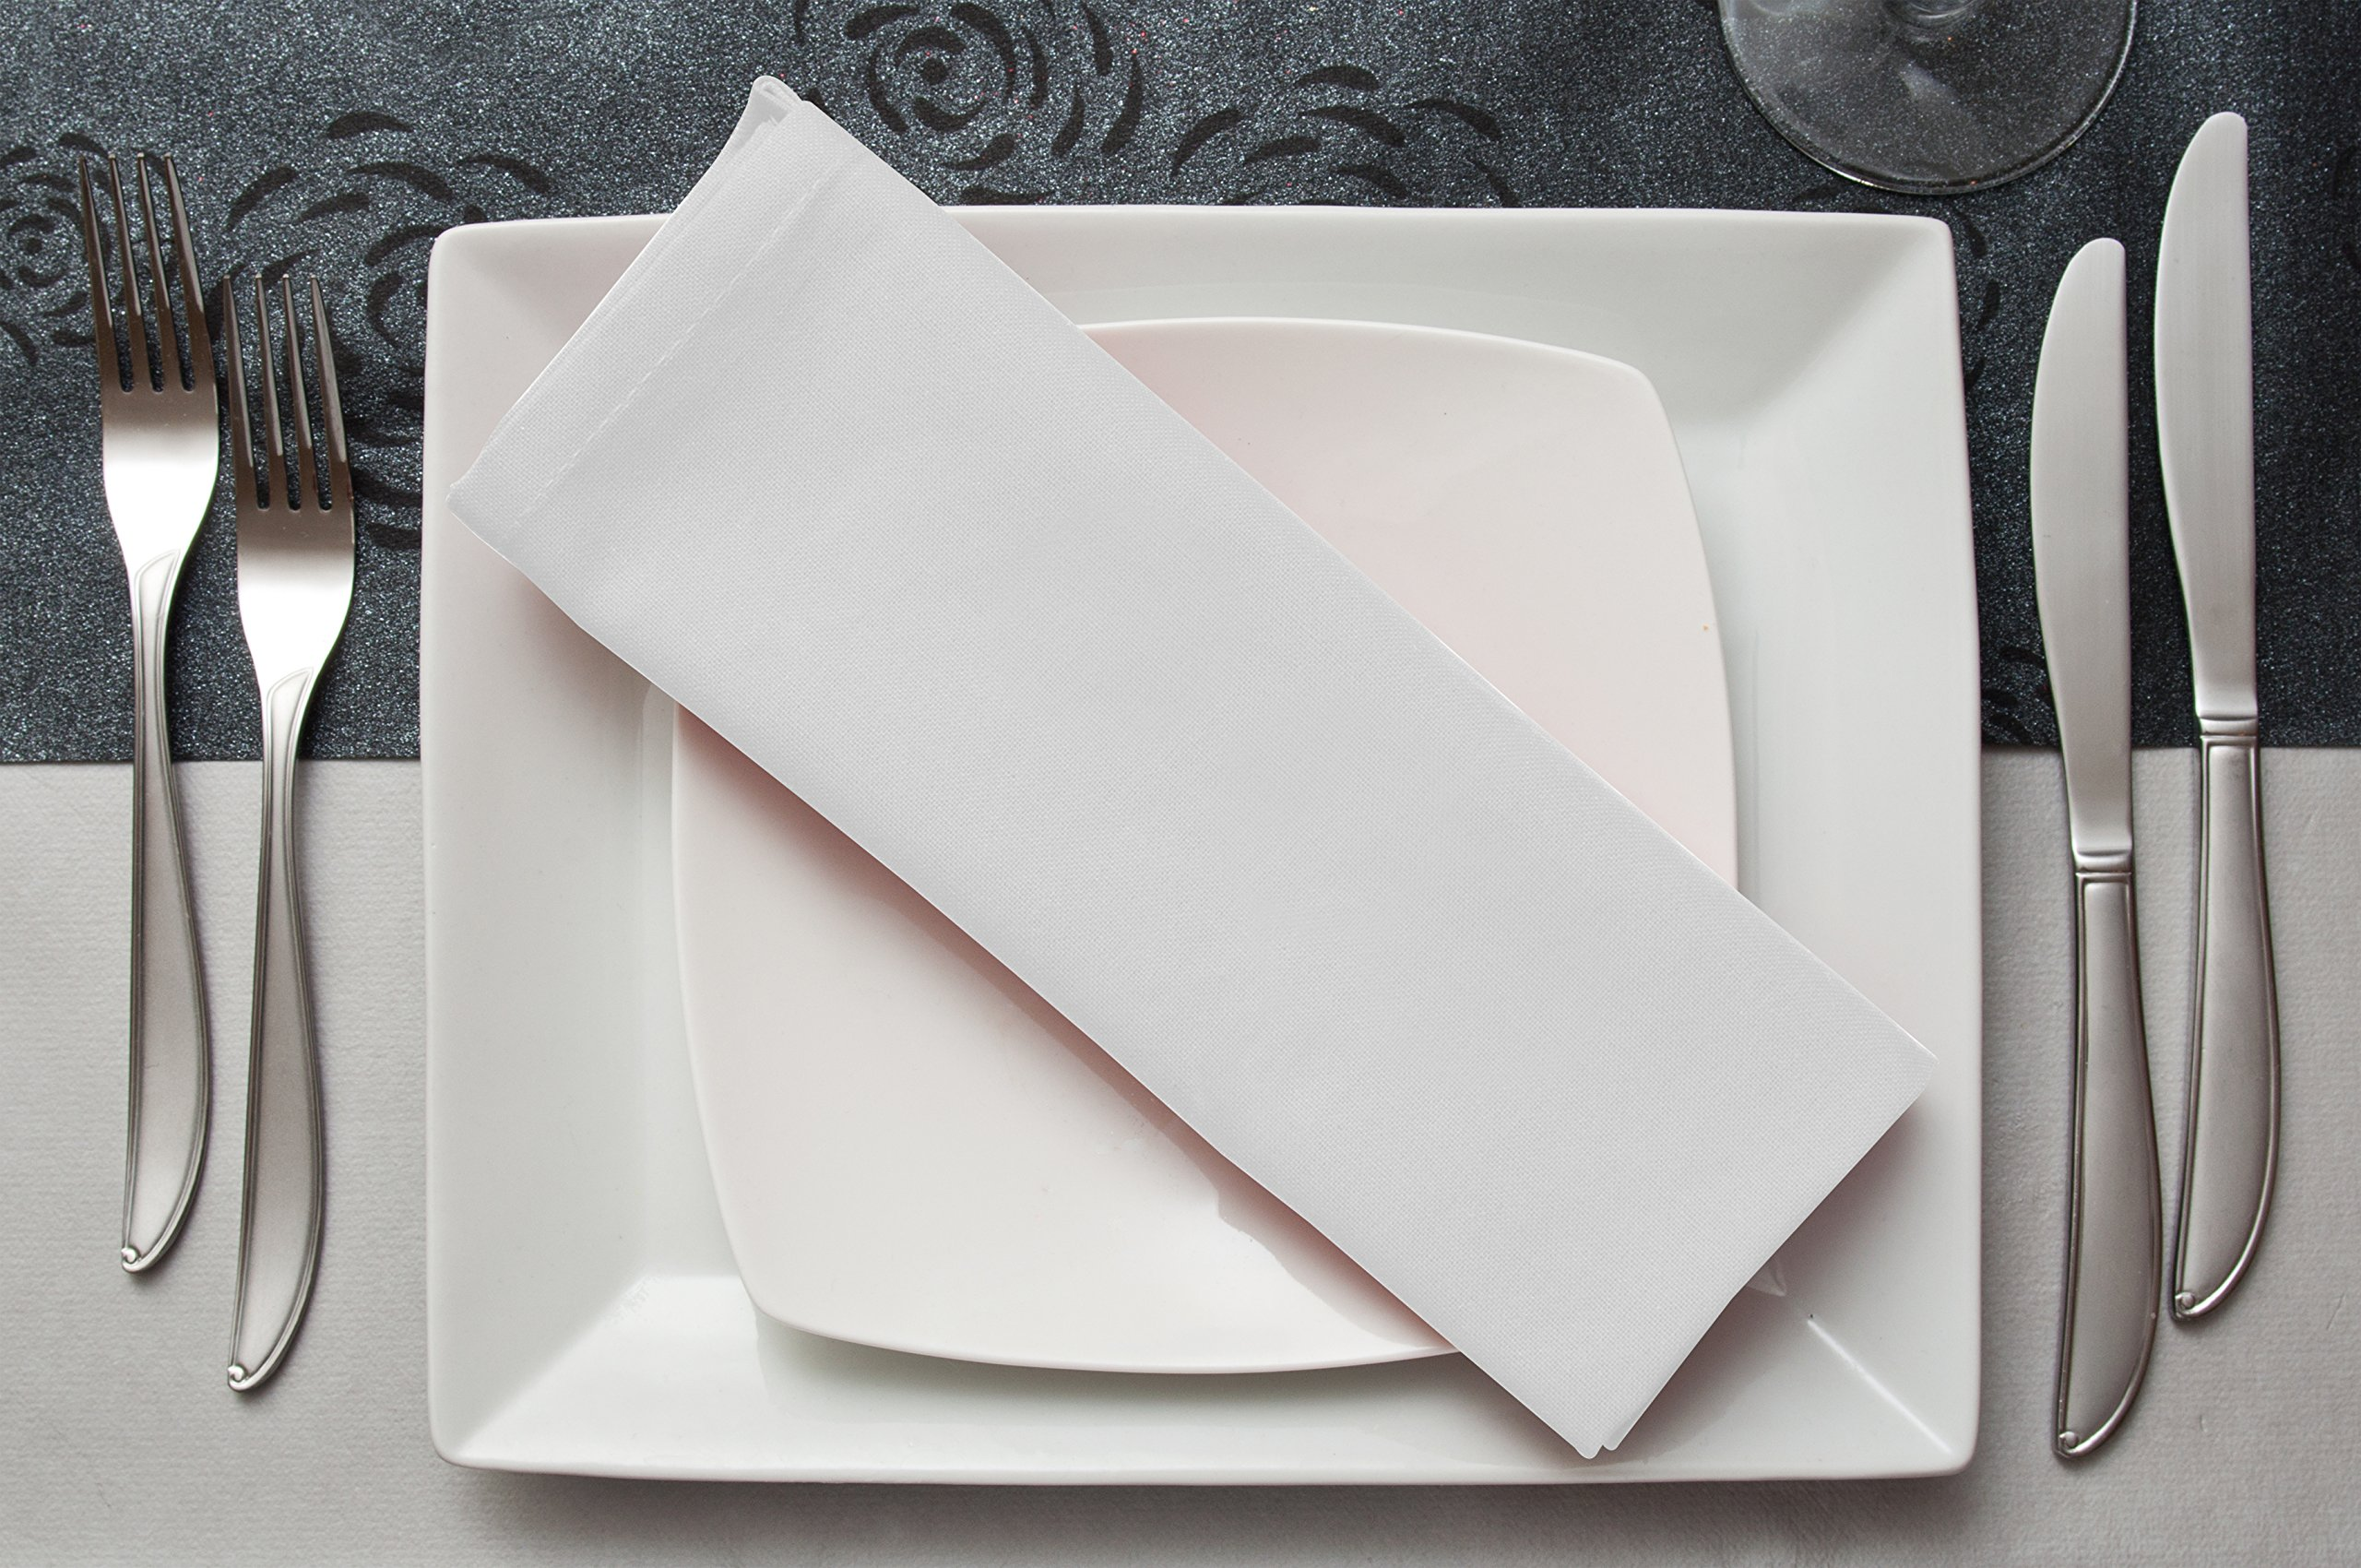 Cotton Dinner Napkins White - 12 Pack (18 inches x18 inches) Soft and Comfortable - Durable Hotel Quality - Ideal for Events and Regular Home Use - by Utopia Bedding by Utopia Bedding (Image #4)